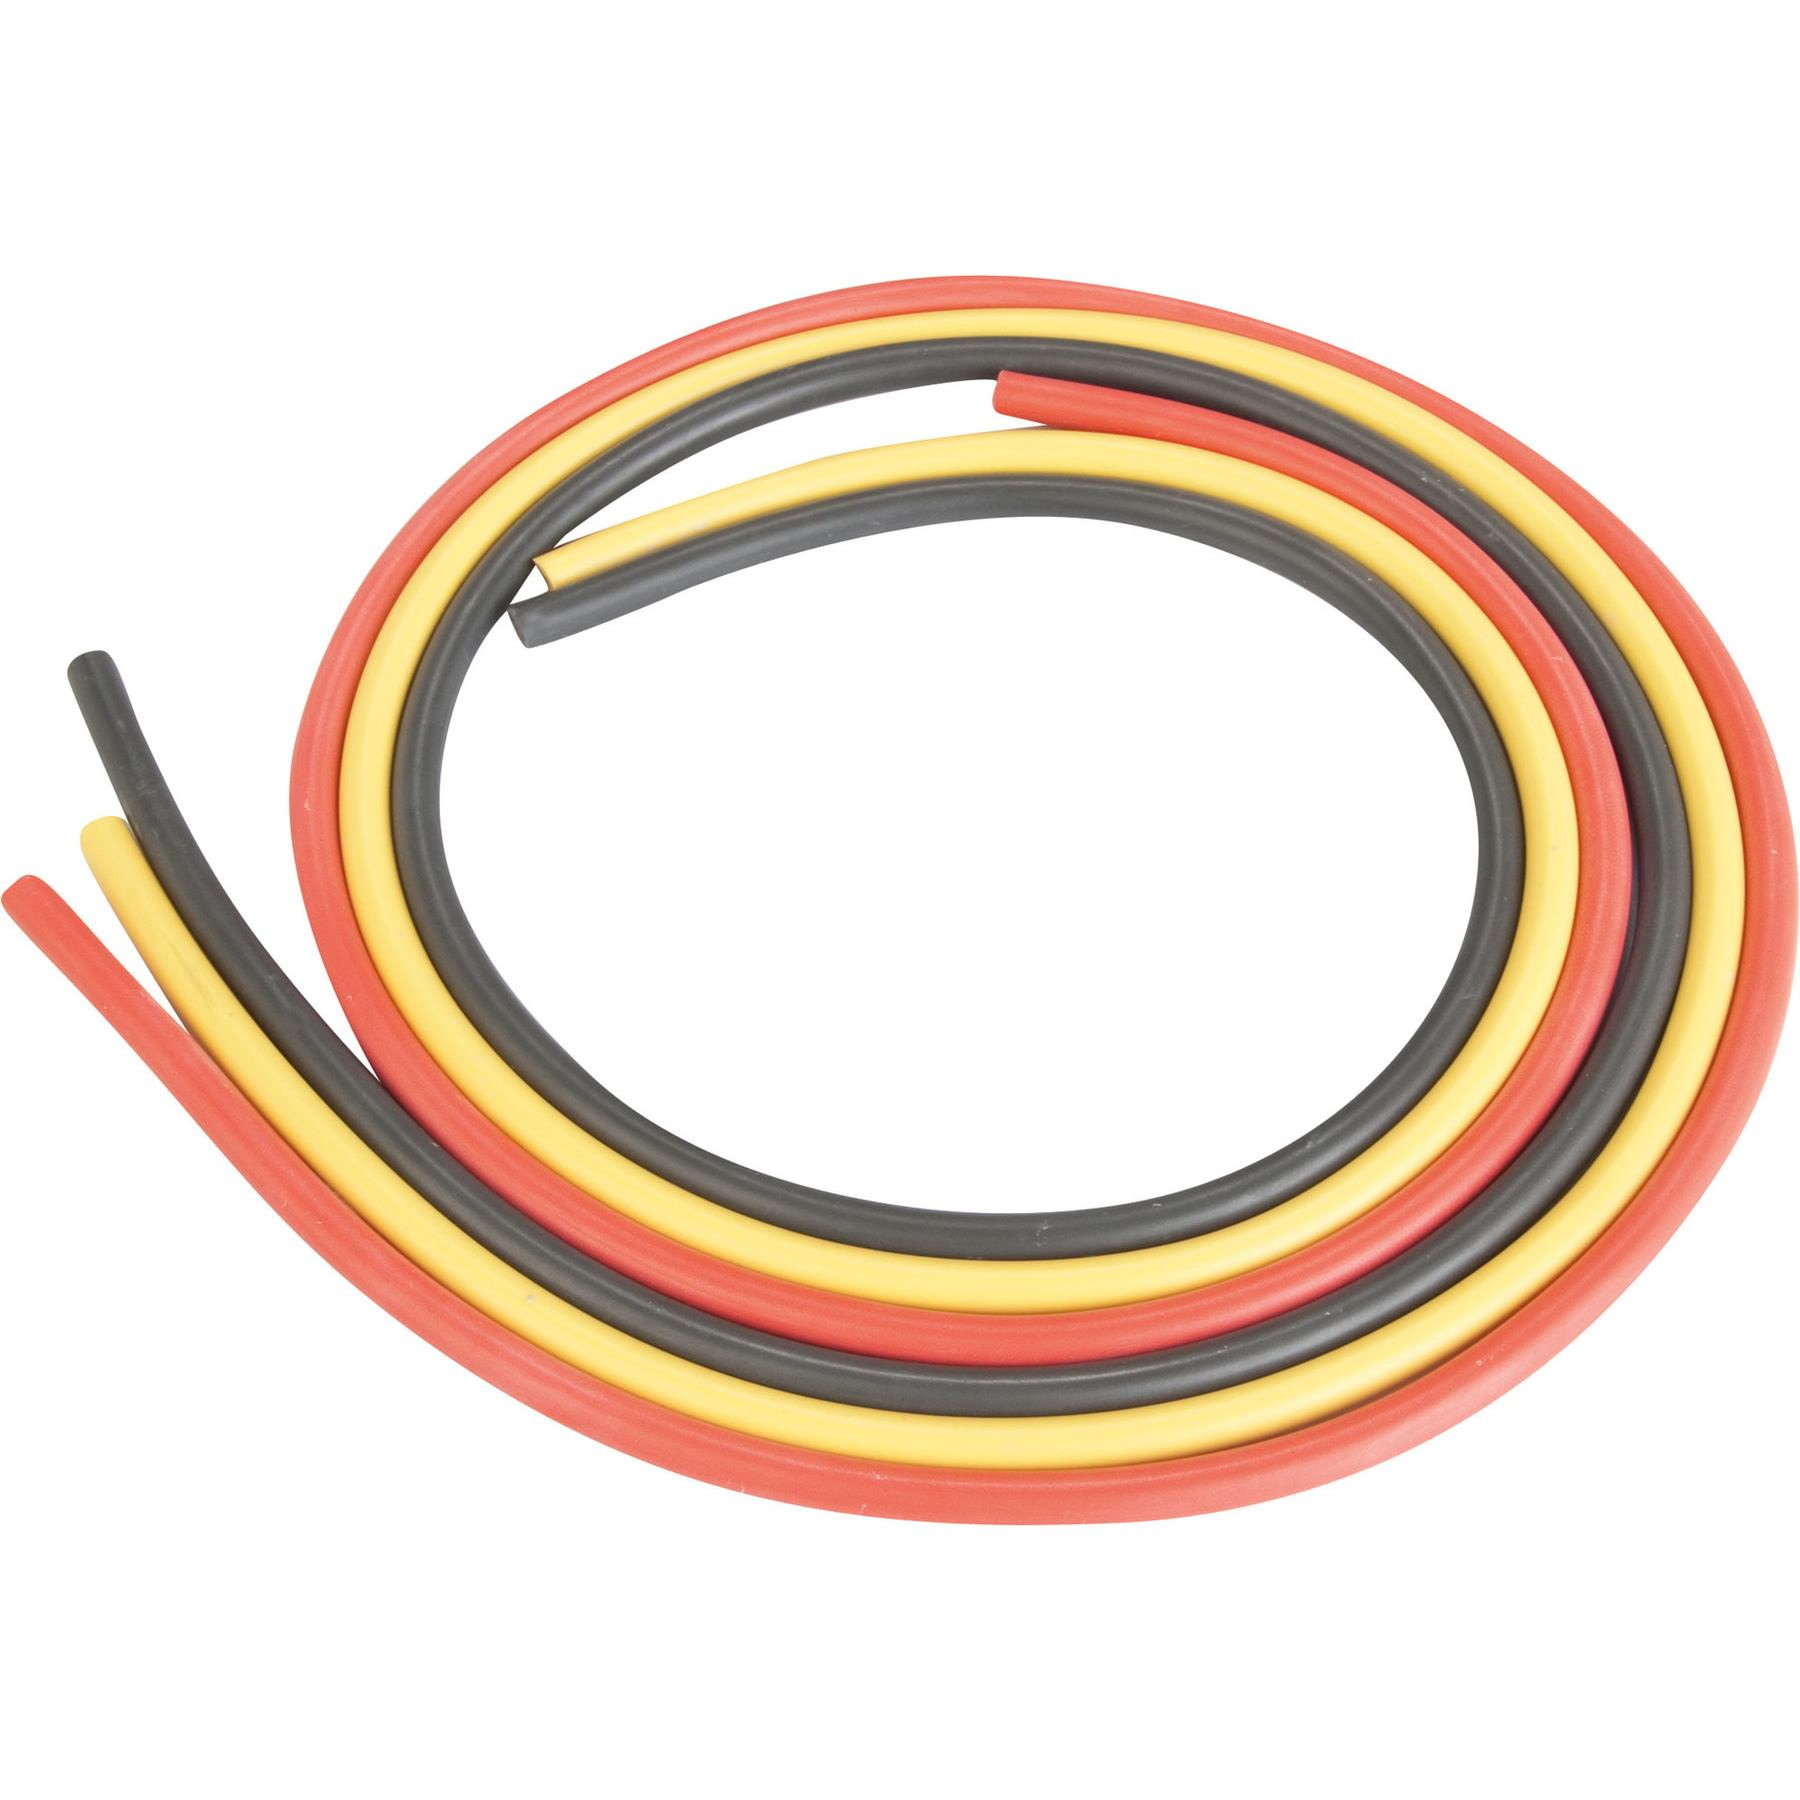 New Spark Plug Cable Copper Core Black 7mm 5 meters